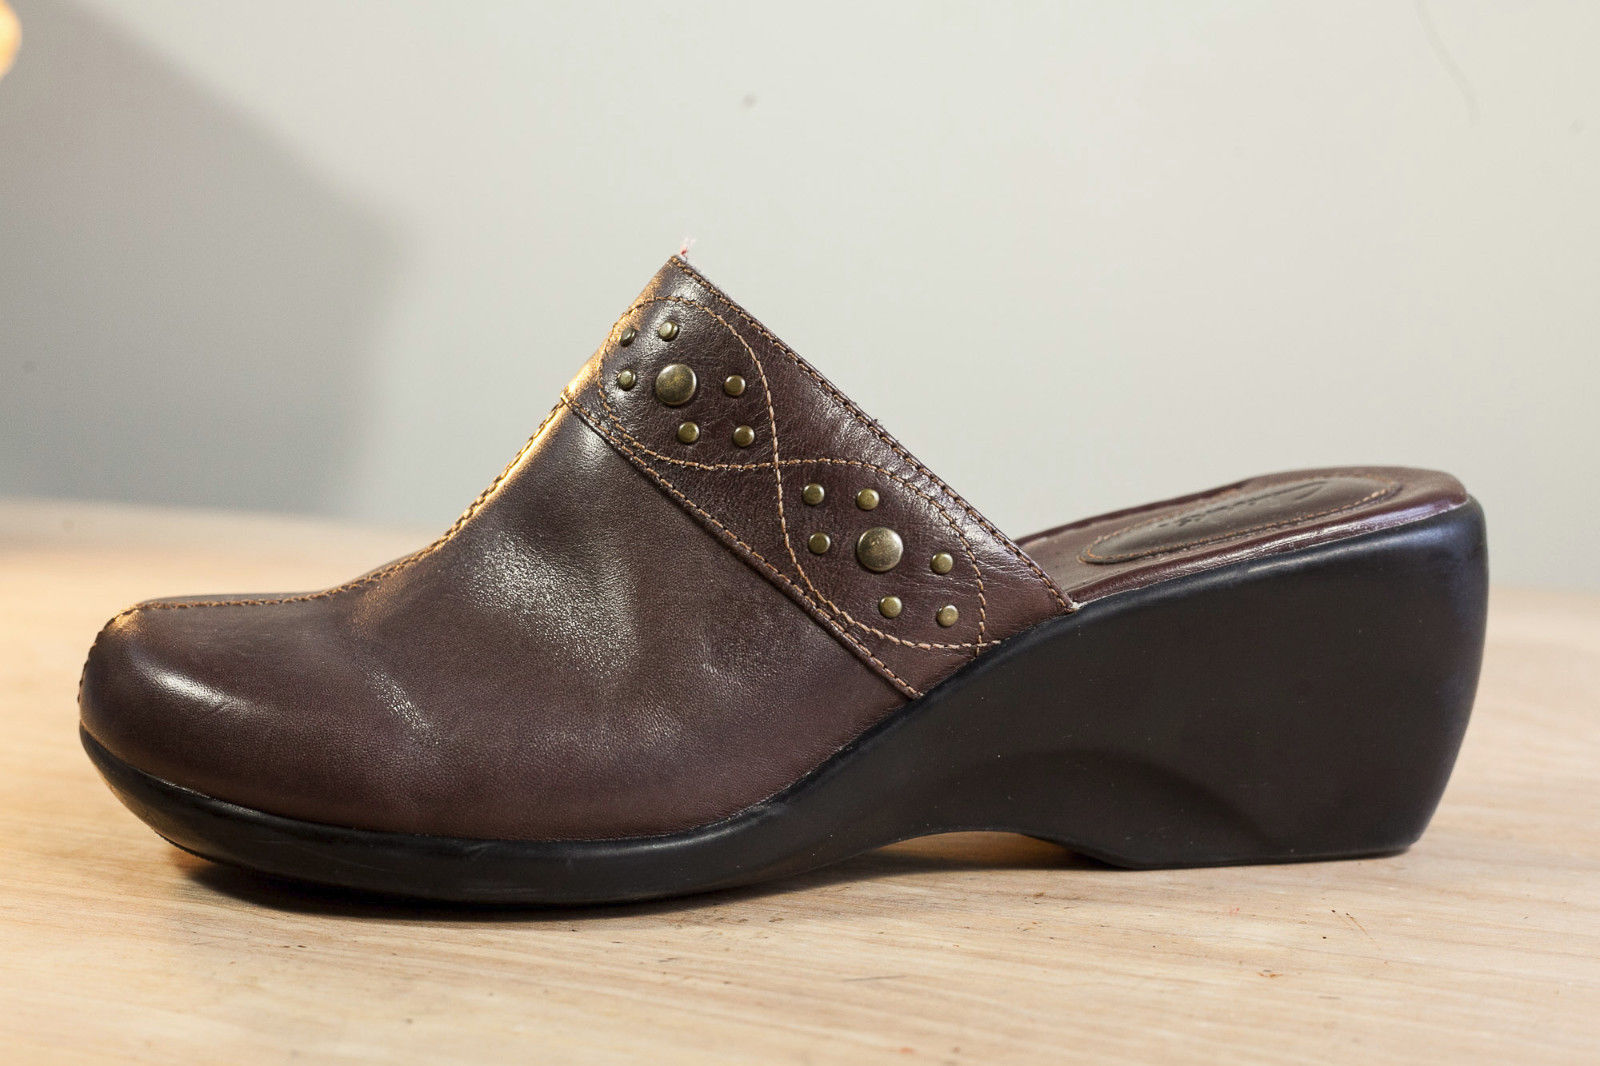 Clarks 9.5 Brown Mules Women's Shoe image 2